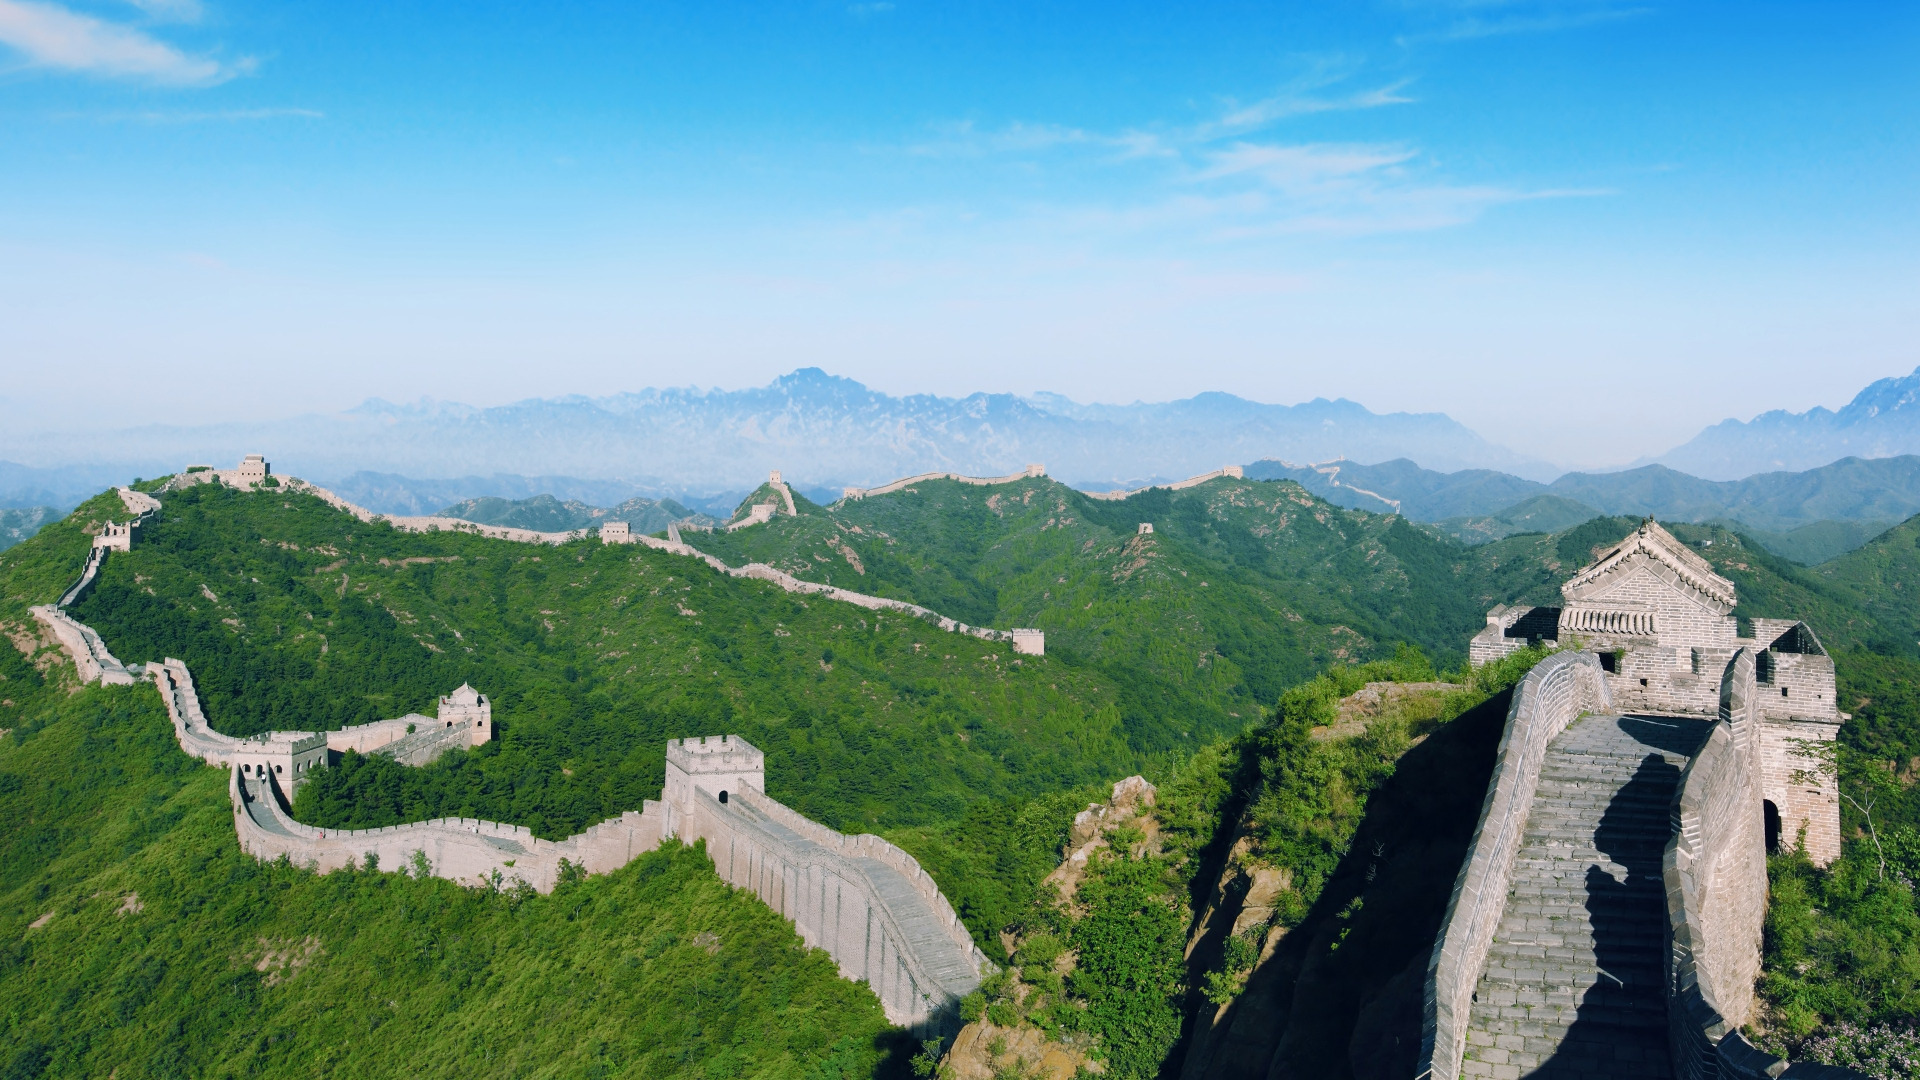 Picture from alphacoders.  Other purposes of the Great Wall have included border controls, allowing the imposition of duties on goods transported along the Silk Road, regulation or encouragement of trade and the control of immigration and emigration. Furthermore, the defensive characteristics of the Great Wall were enhanced by the construction of watch towers, troop barracks, garrison stations, signaling capabilities through the means of smoke or fire, and the fact that the path of the Great Wall also served as a transportation corridor.